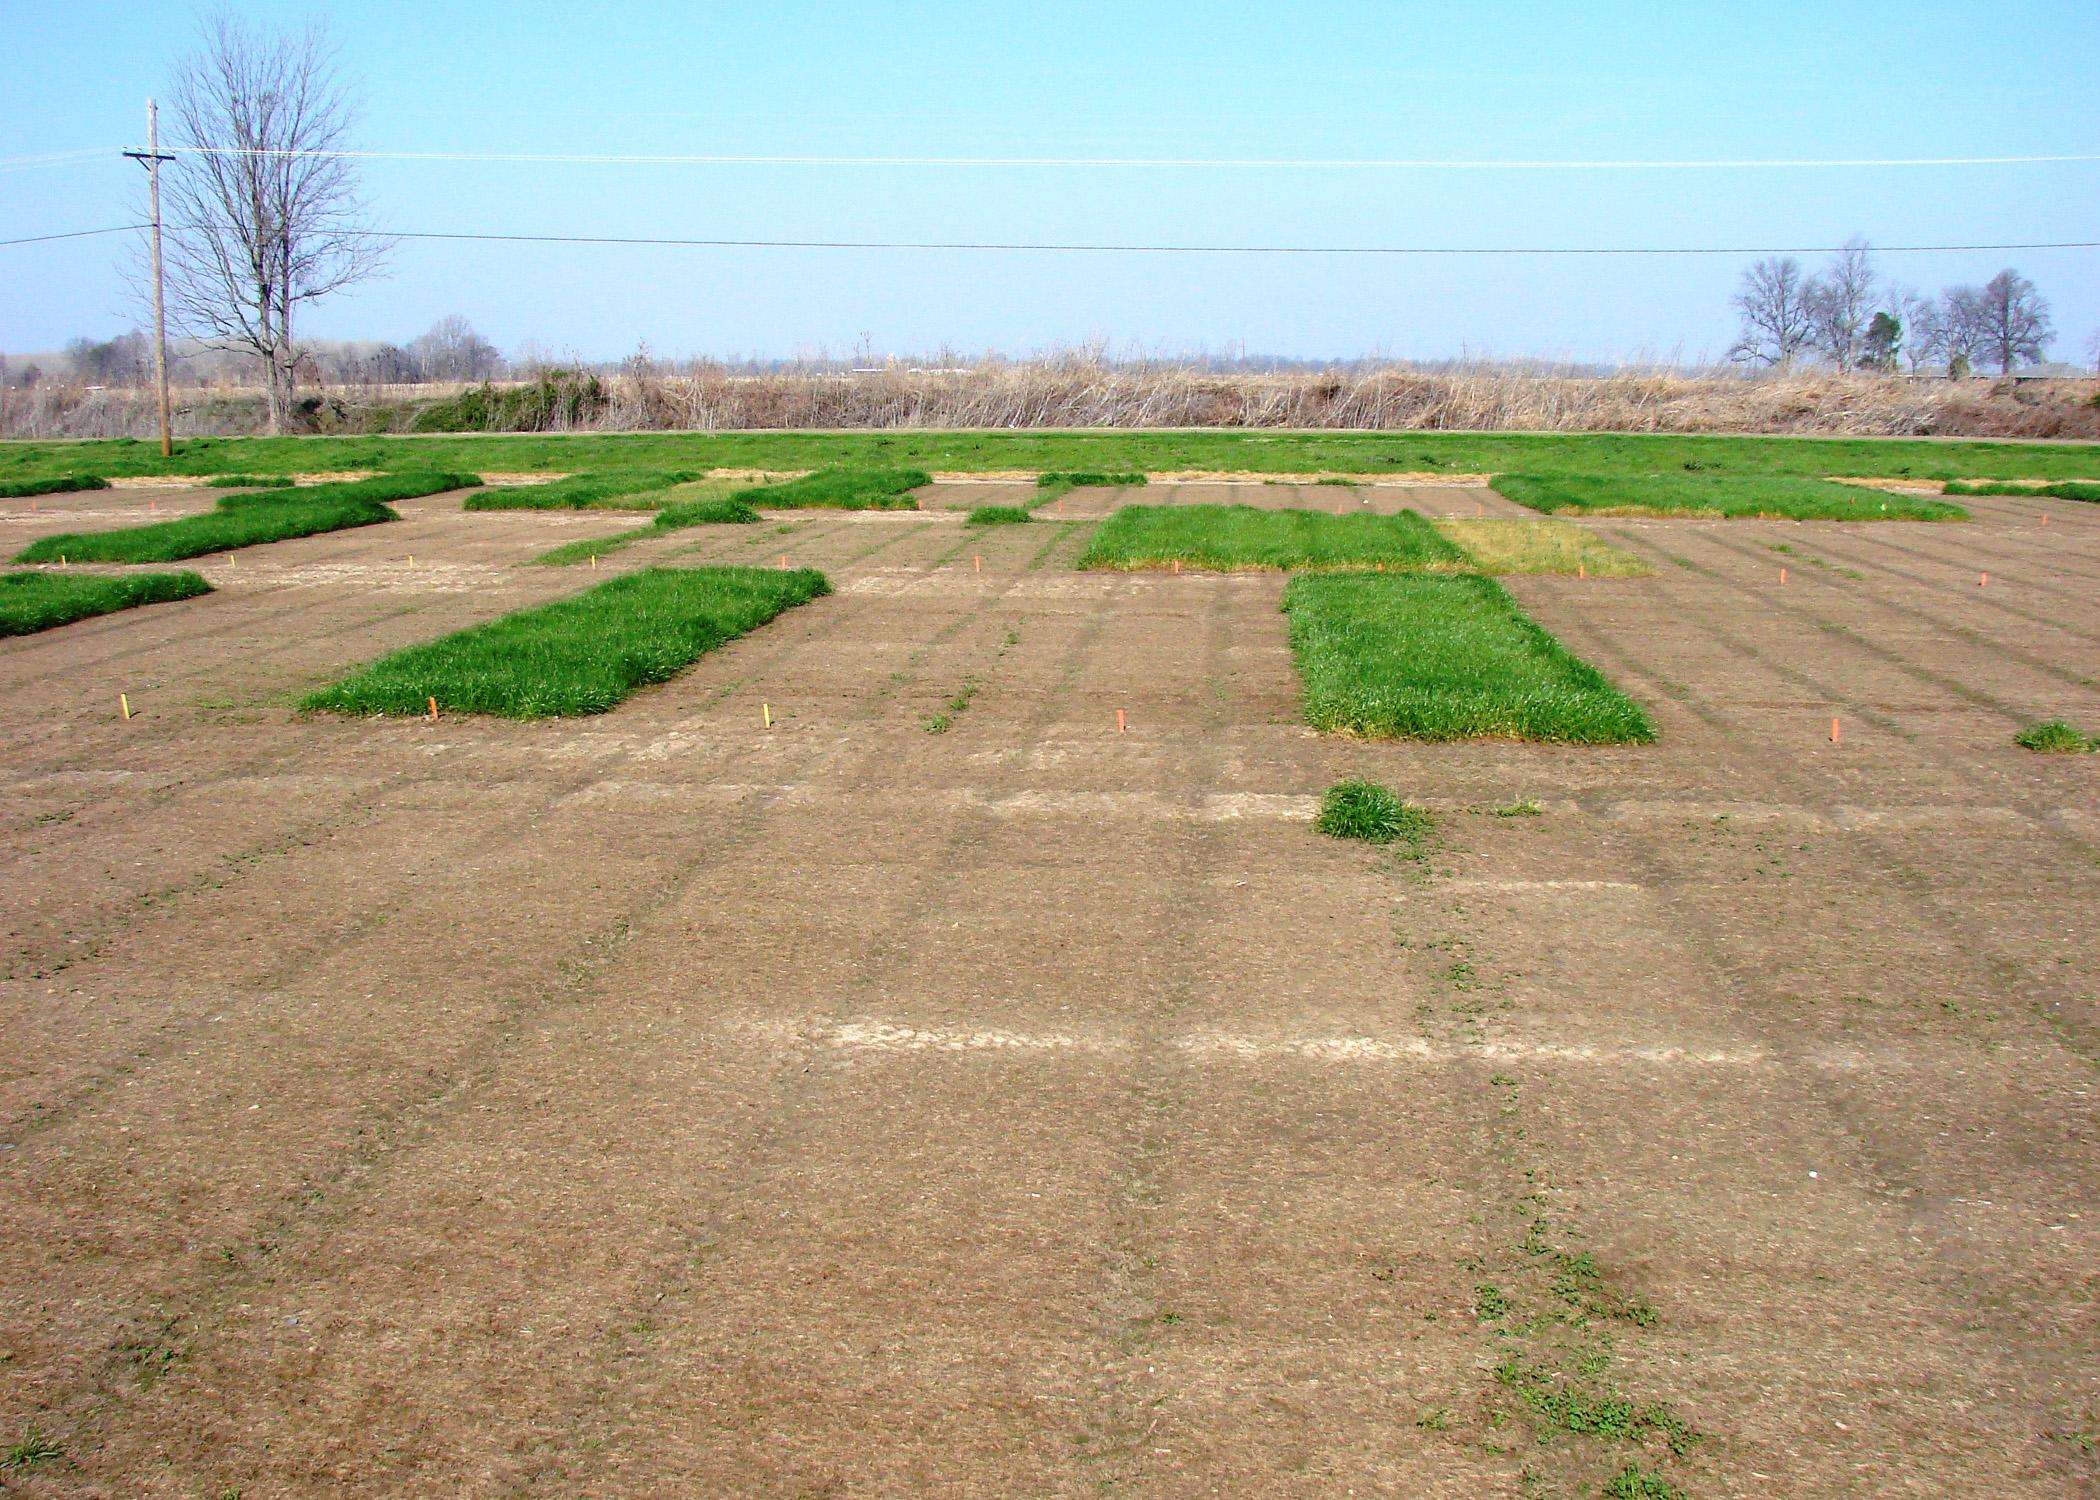 The Mississippi Agricultural and Forestry Experiment Station hosts small-plot research on the Mississippi State University campus so researchers can evaluate residual control of glyphosate-resistant Italian ryegrass to determine the best practices for combating the weed. (Photo submitted)